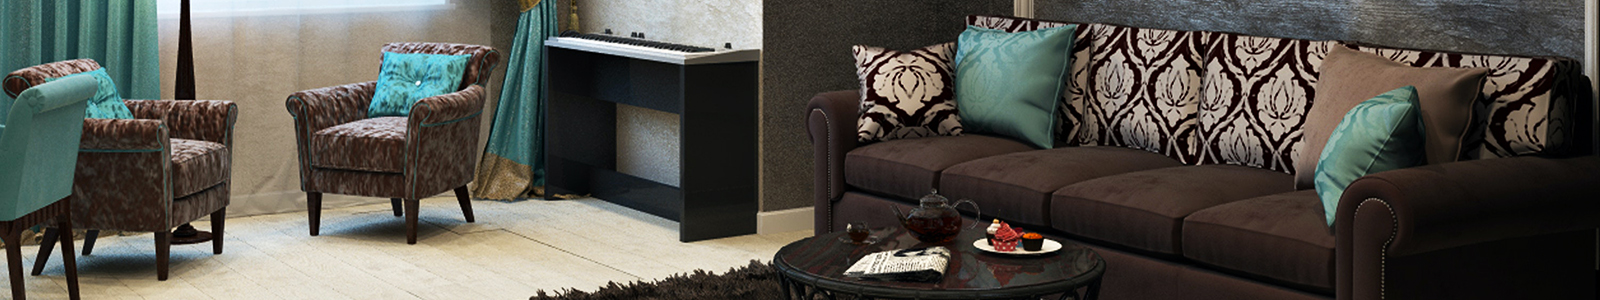 Furniture and Living in New Zealand -Local Biz